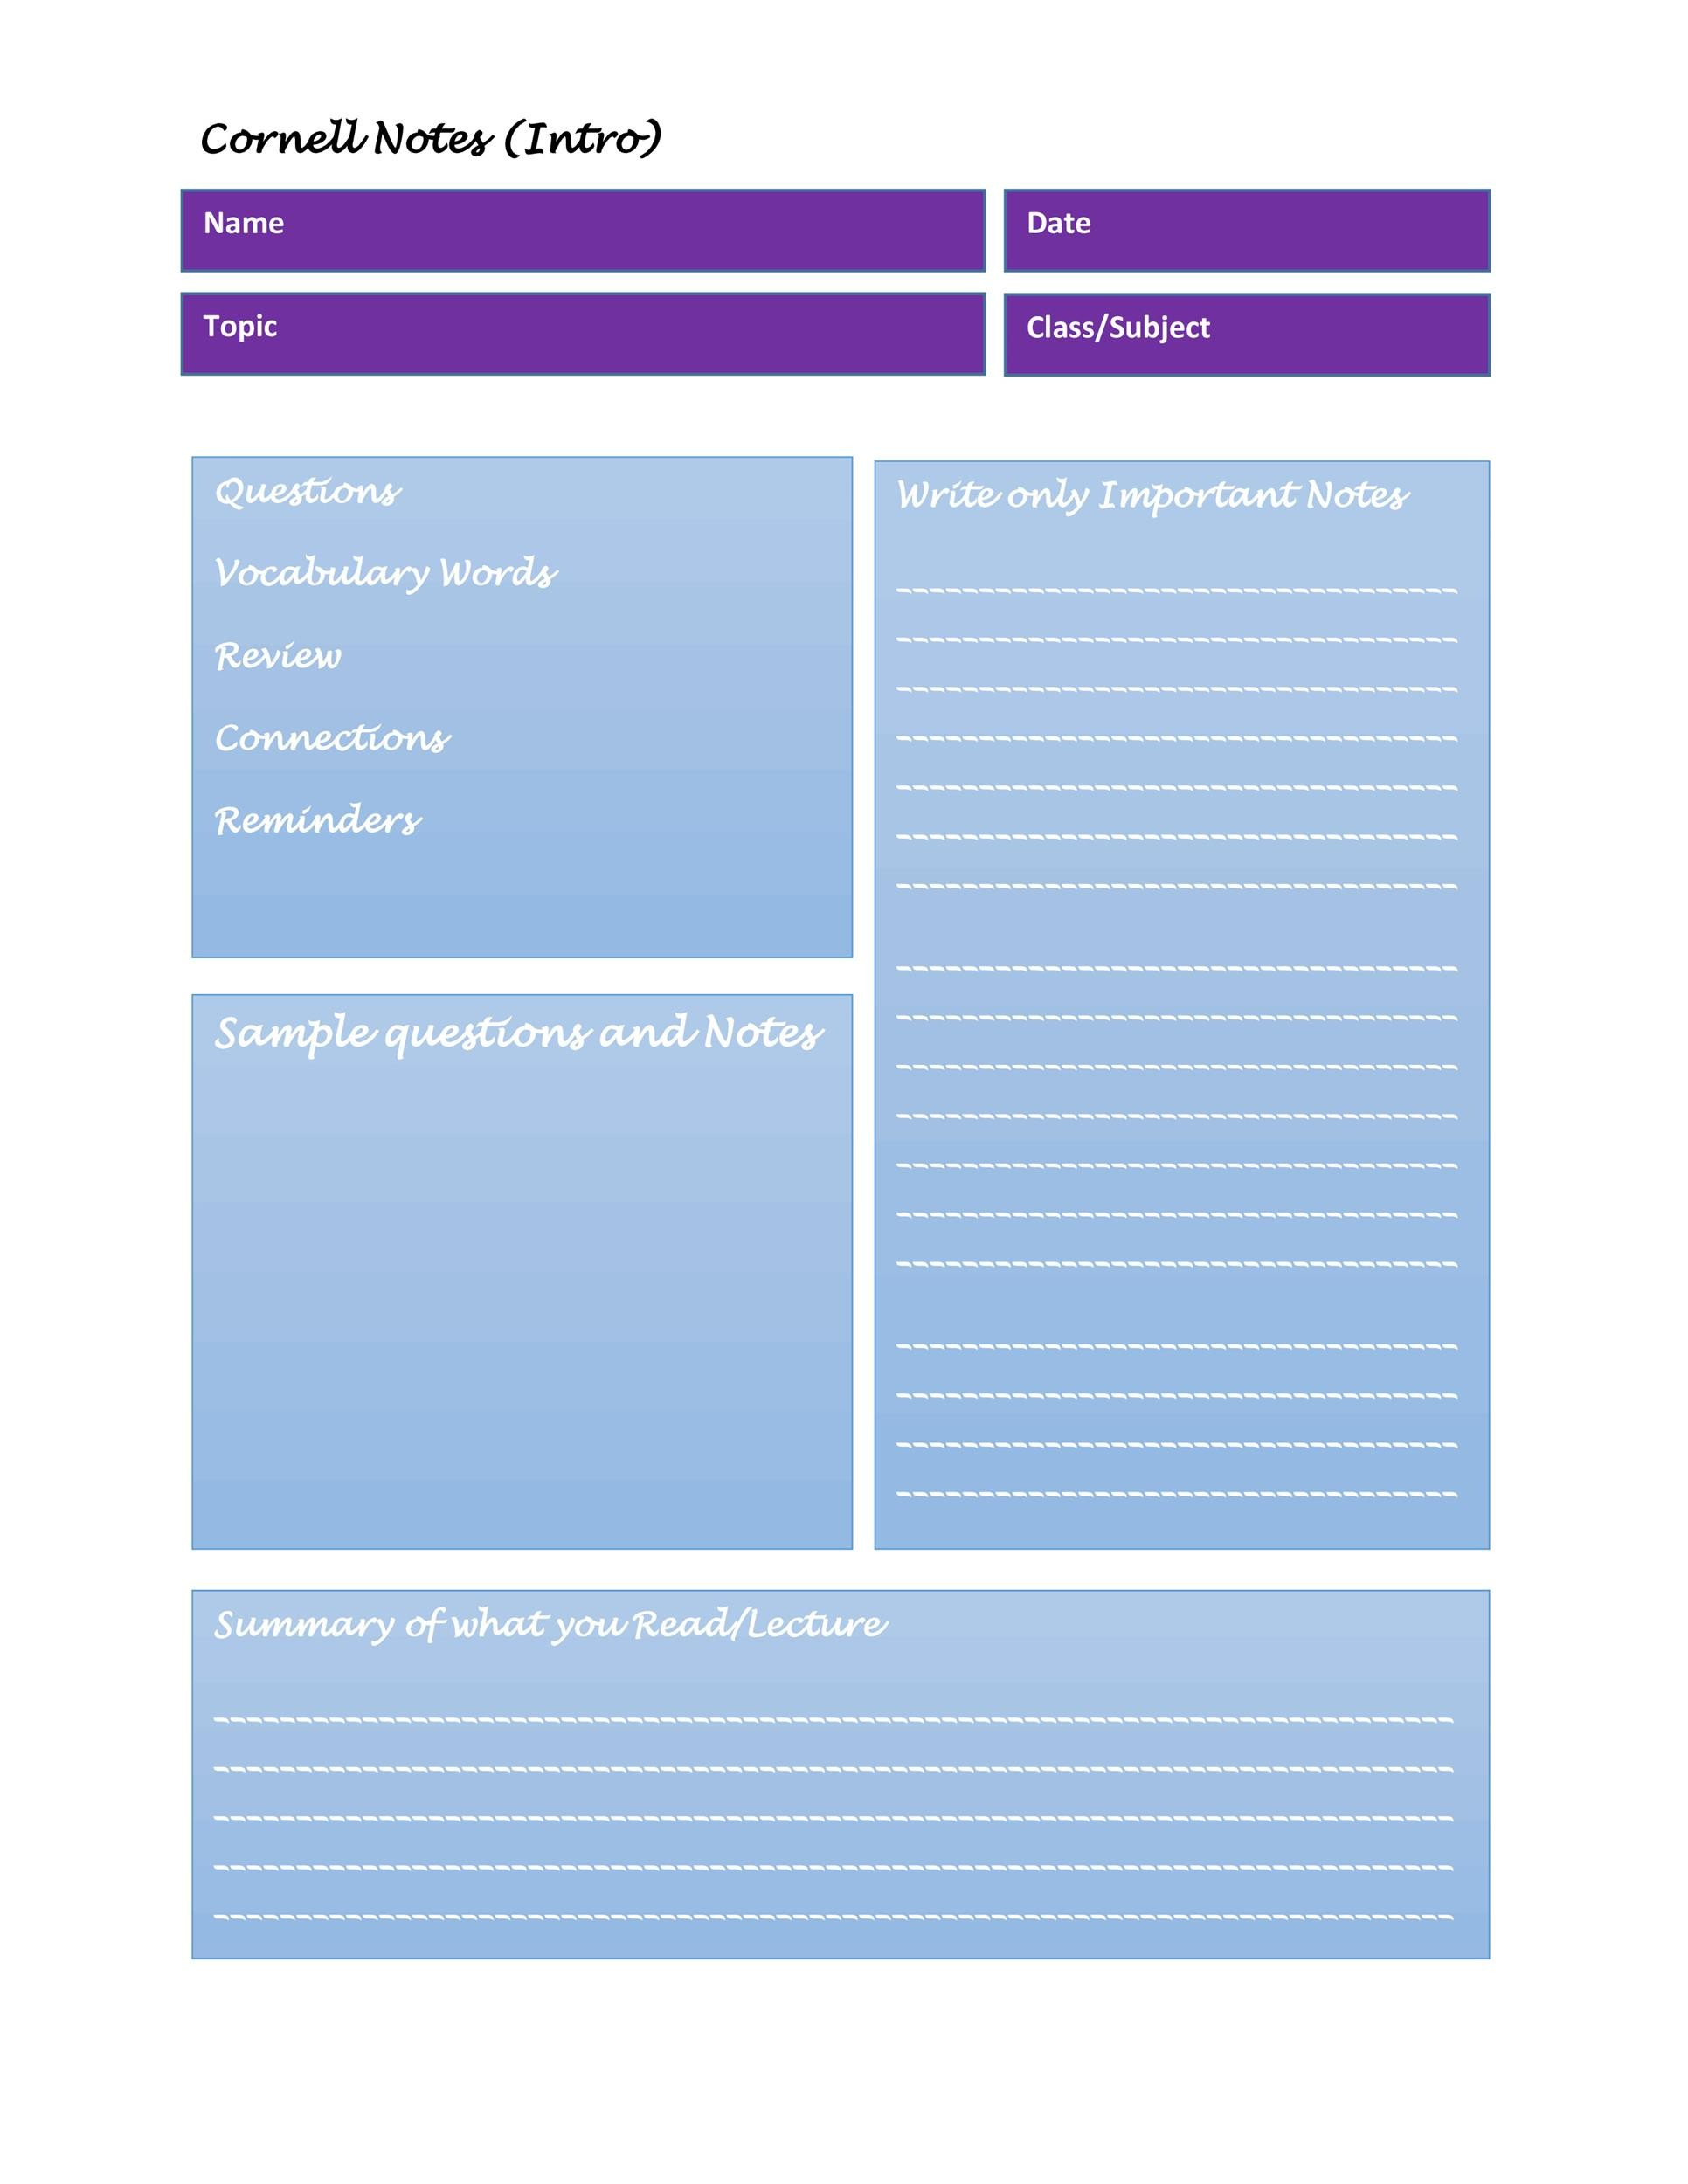 Cornell Notes Template 23